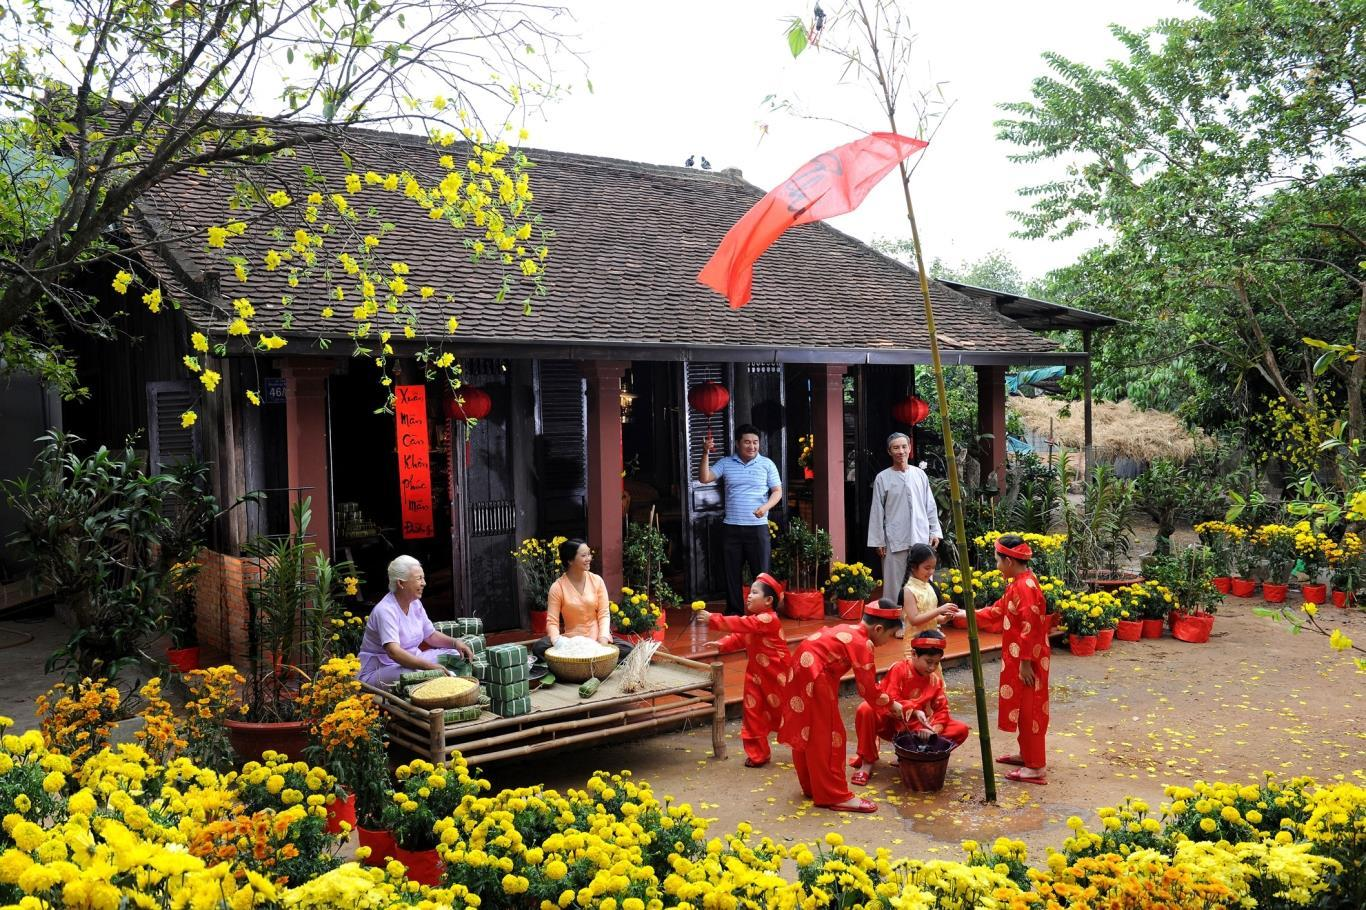 Tet is the most important national holiday in Vietnam